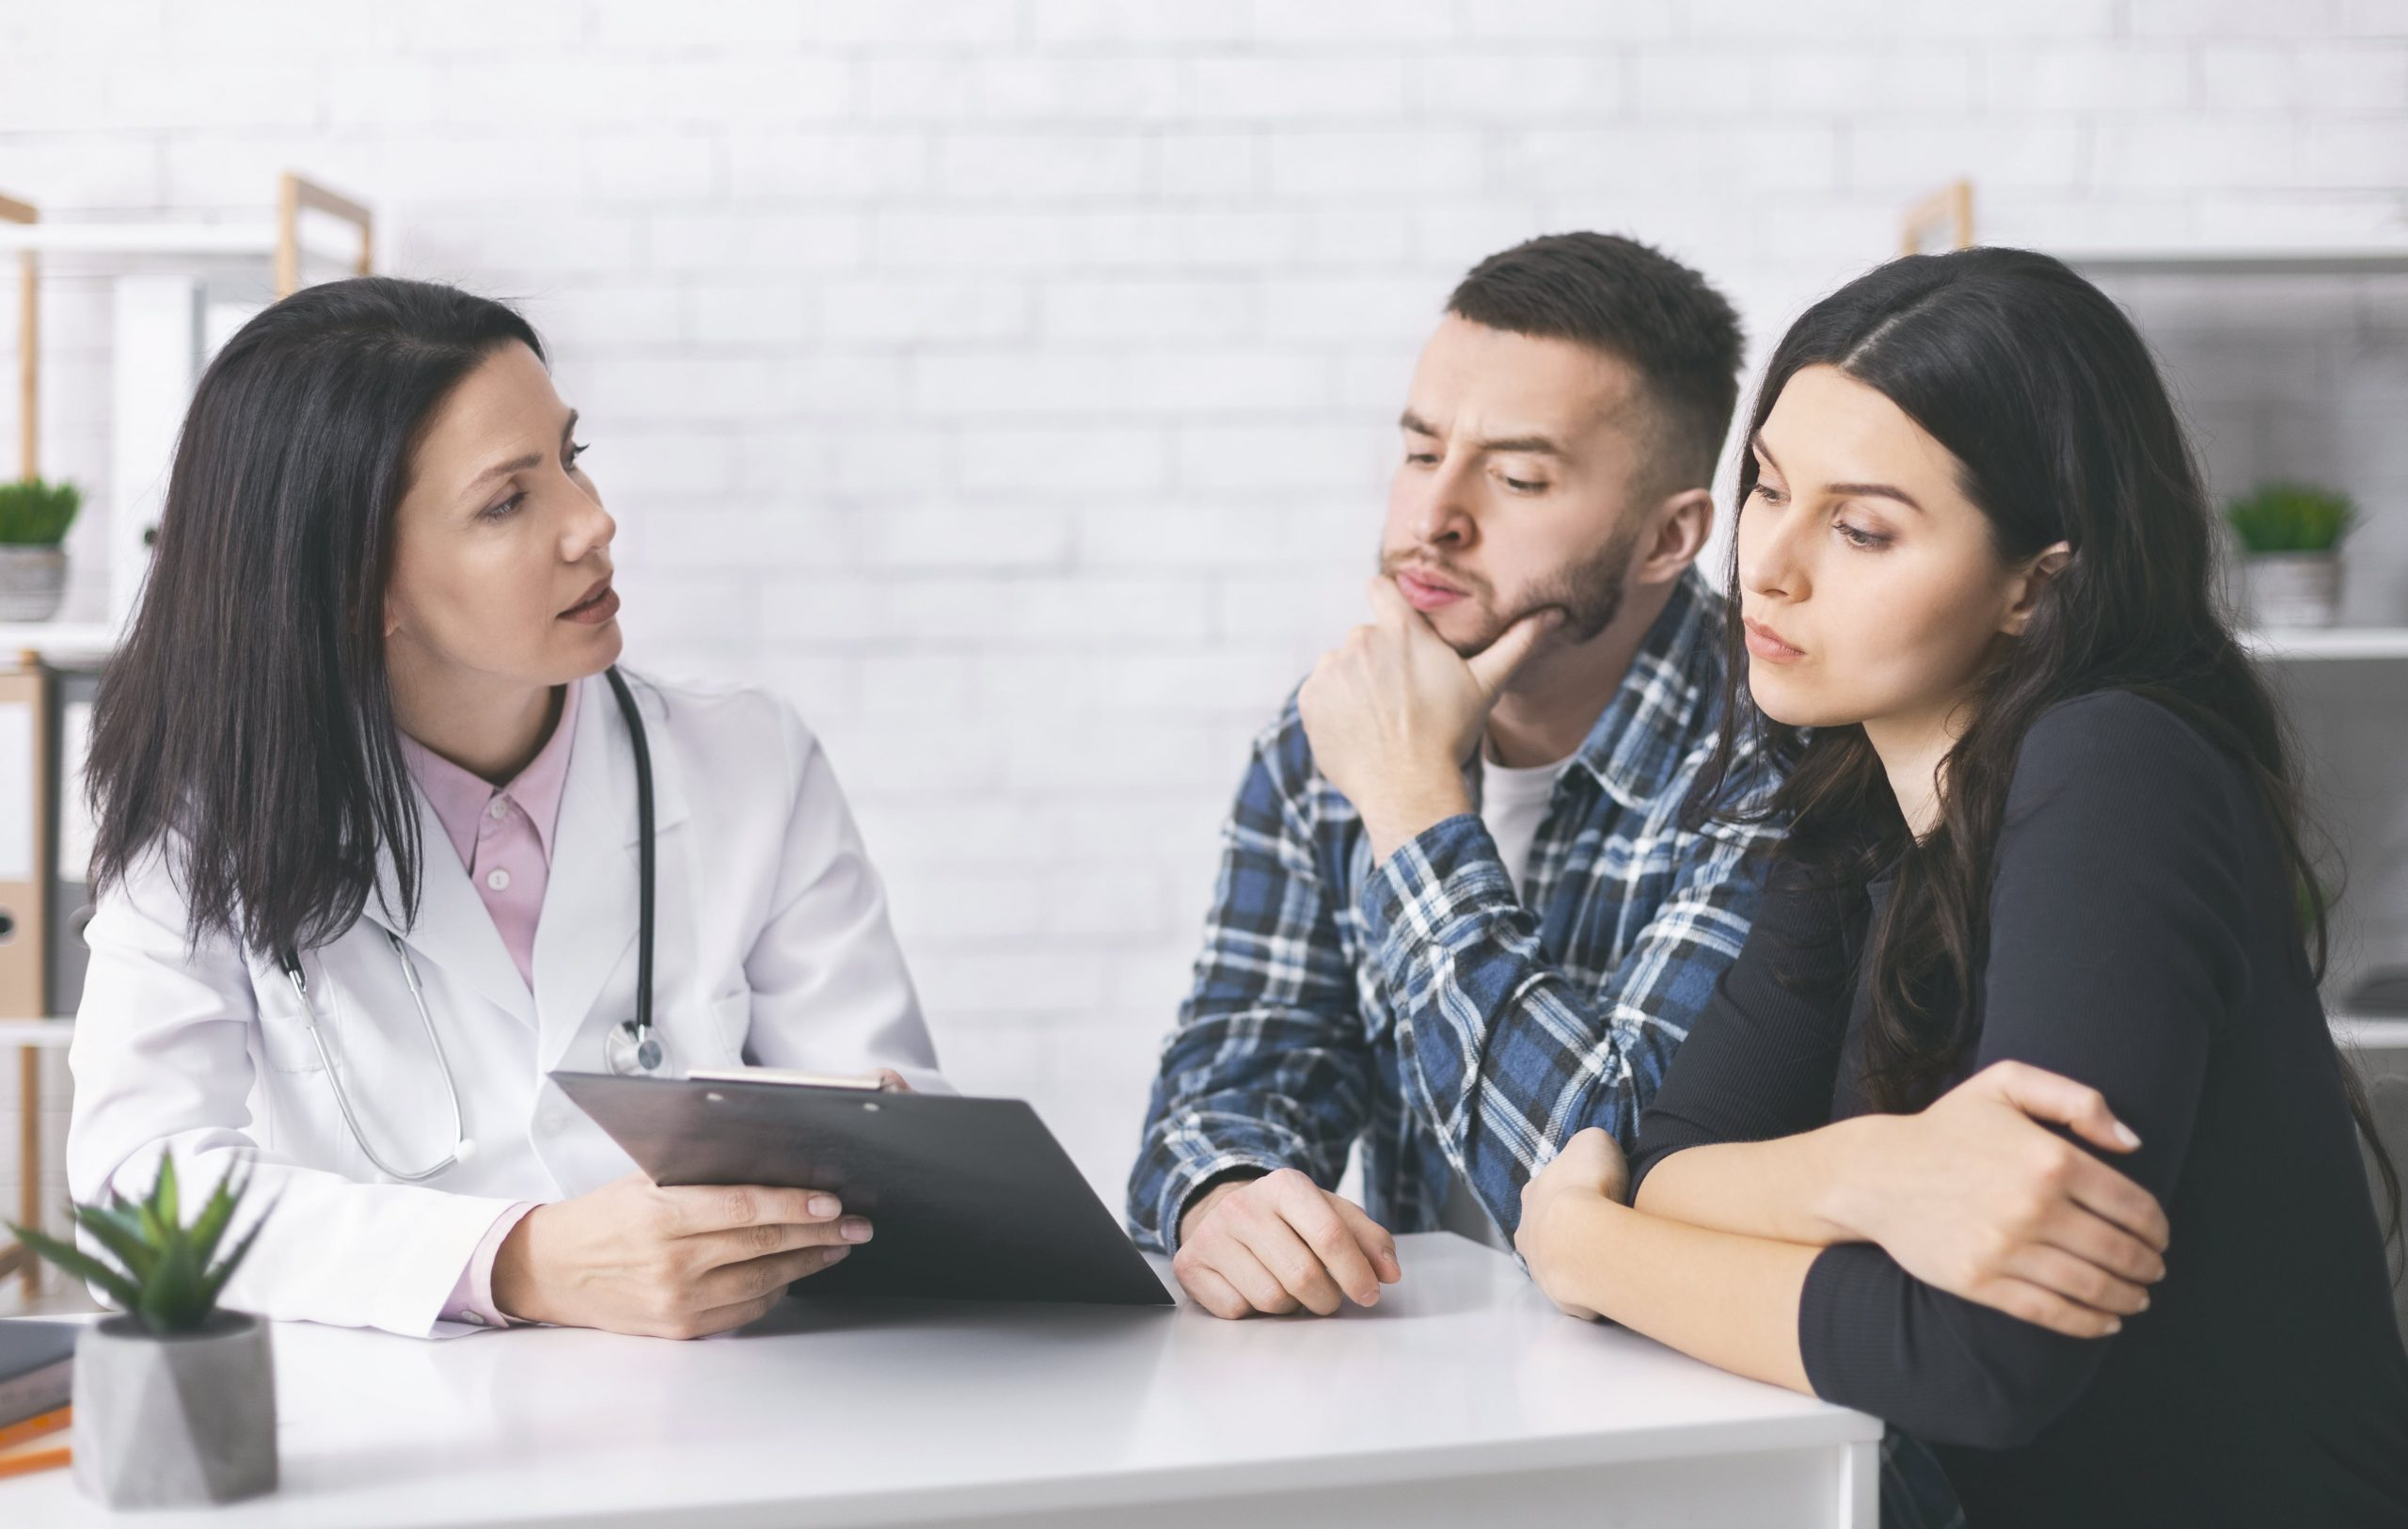 Young man and woman sitting at desk with fertility doctor discussing PCOS.